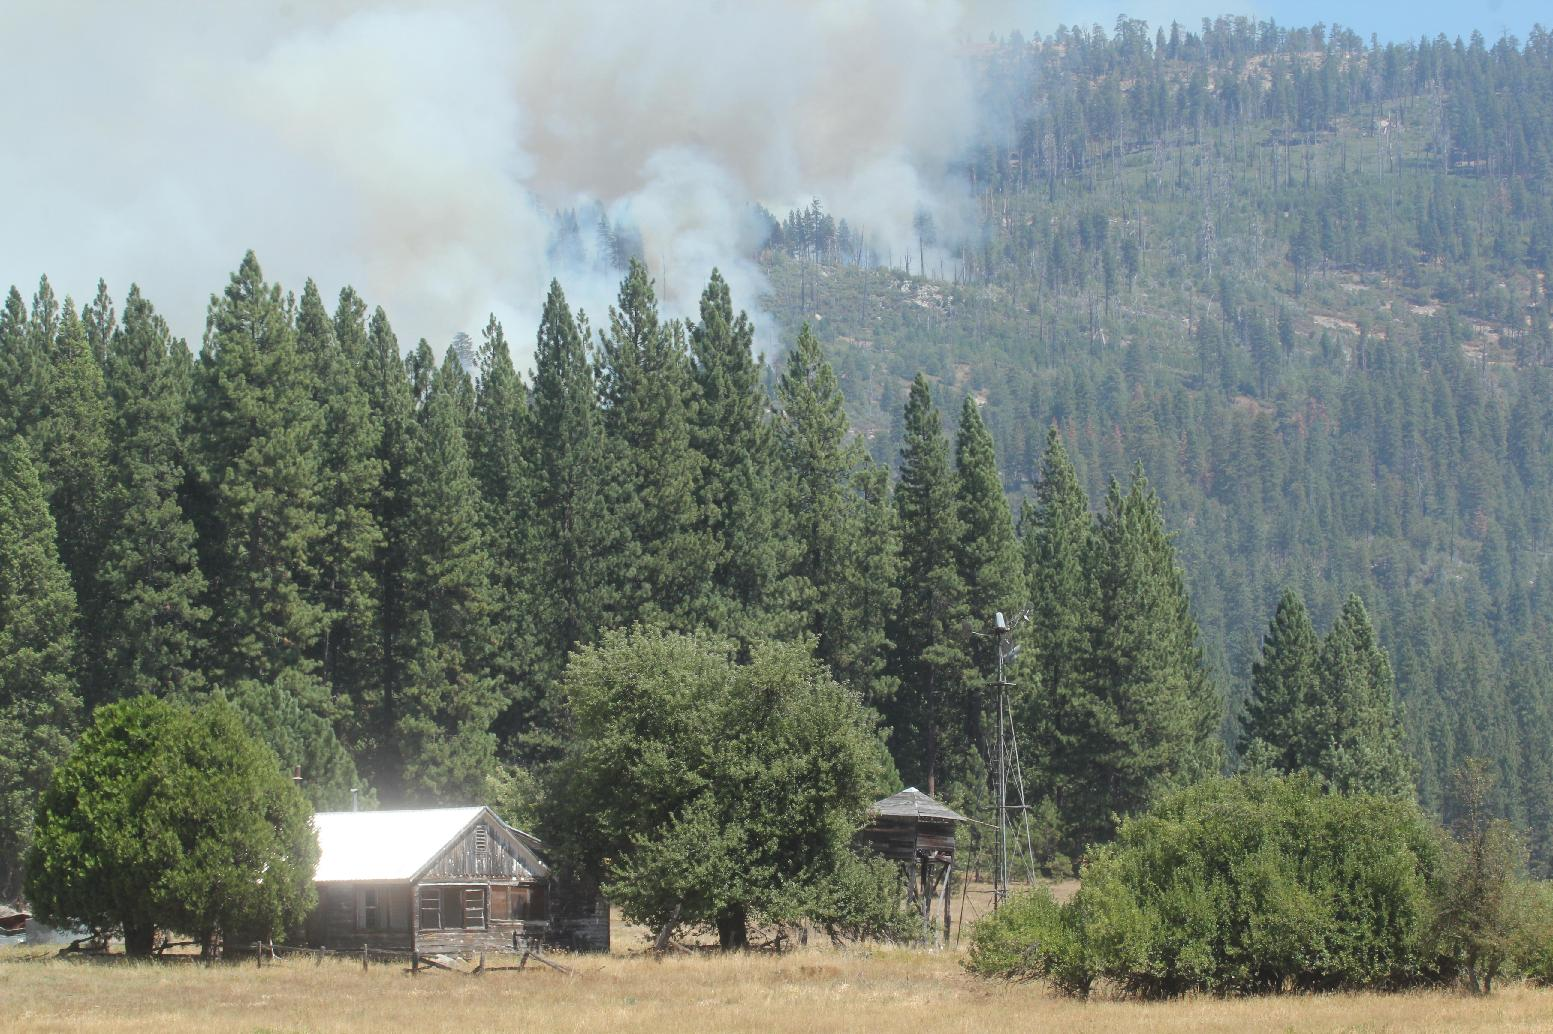 Ackerson Meadow and Rim Fire - photo USFS Mike McMillan